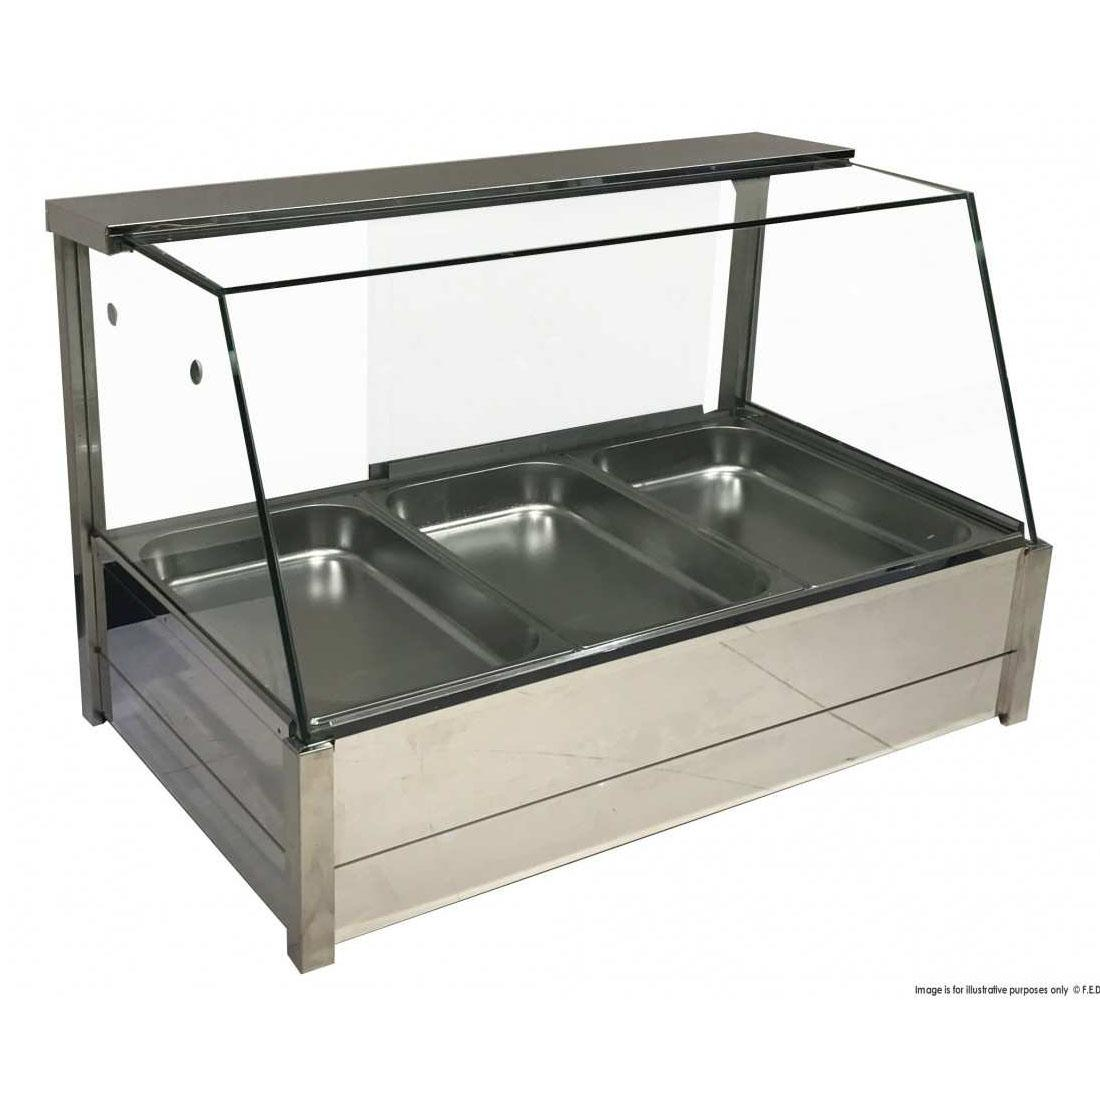 BM11TD Heated Wet Six × ½ Pan Bain Marie Angled Countertop Display